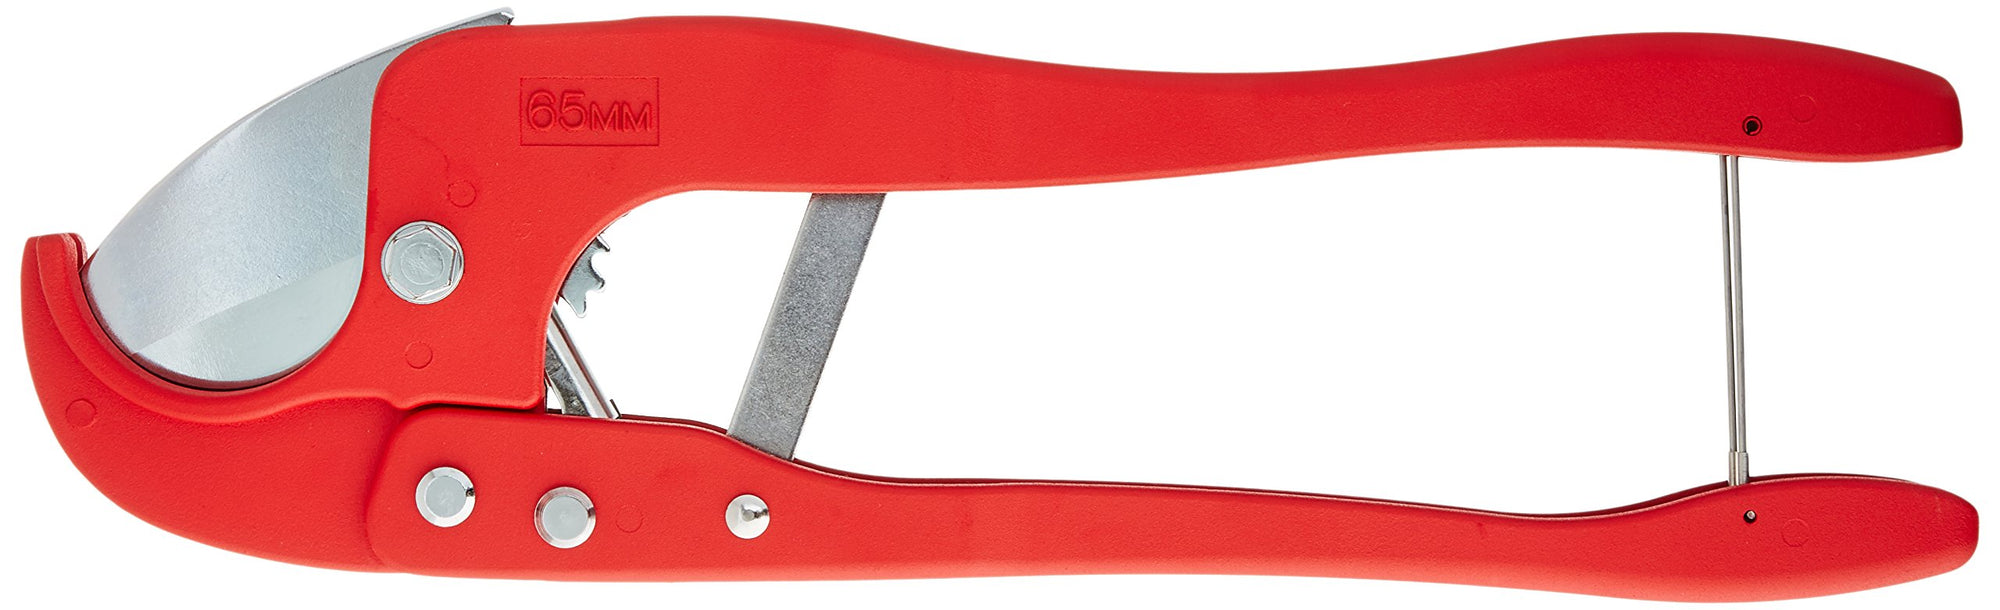 "Jumbo PVC Pipe Cutter, 1/2"" to 2-1/2"" 